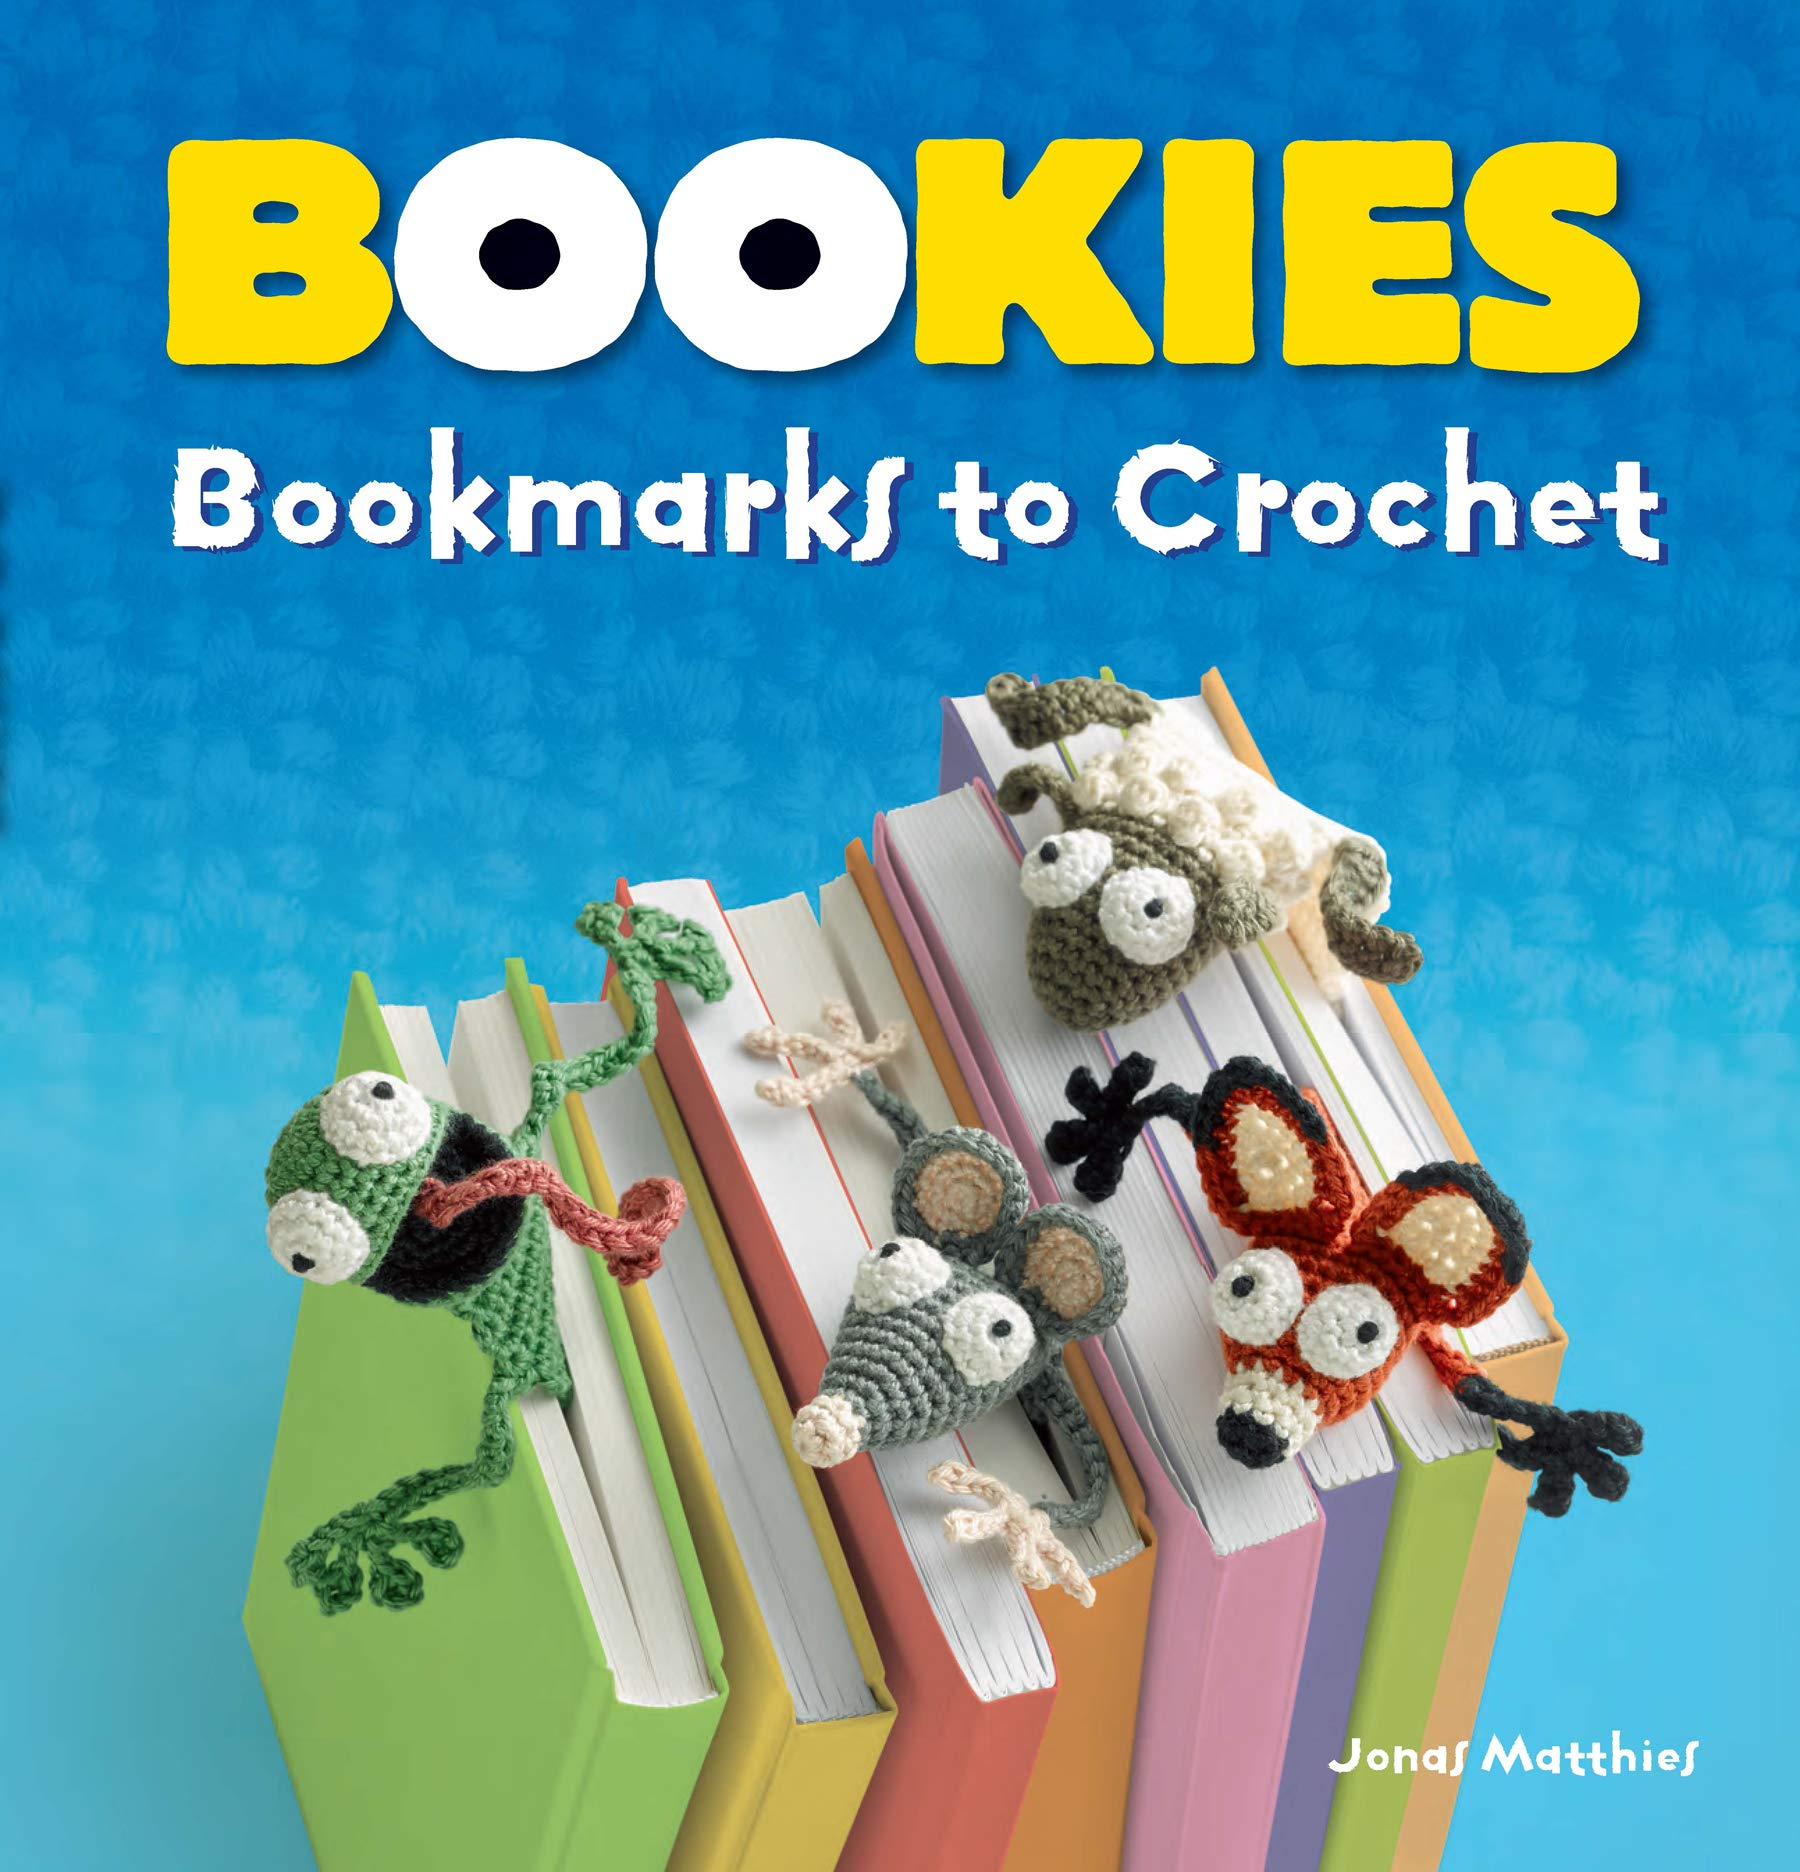 Review: Bookies: Bookmarks to Crochet • The Candid Cover